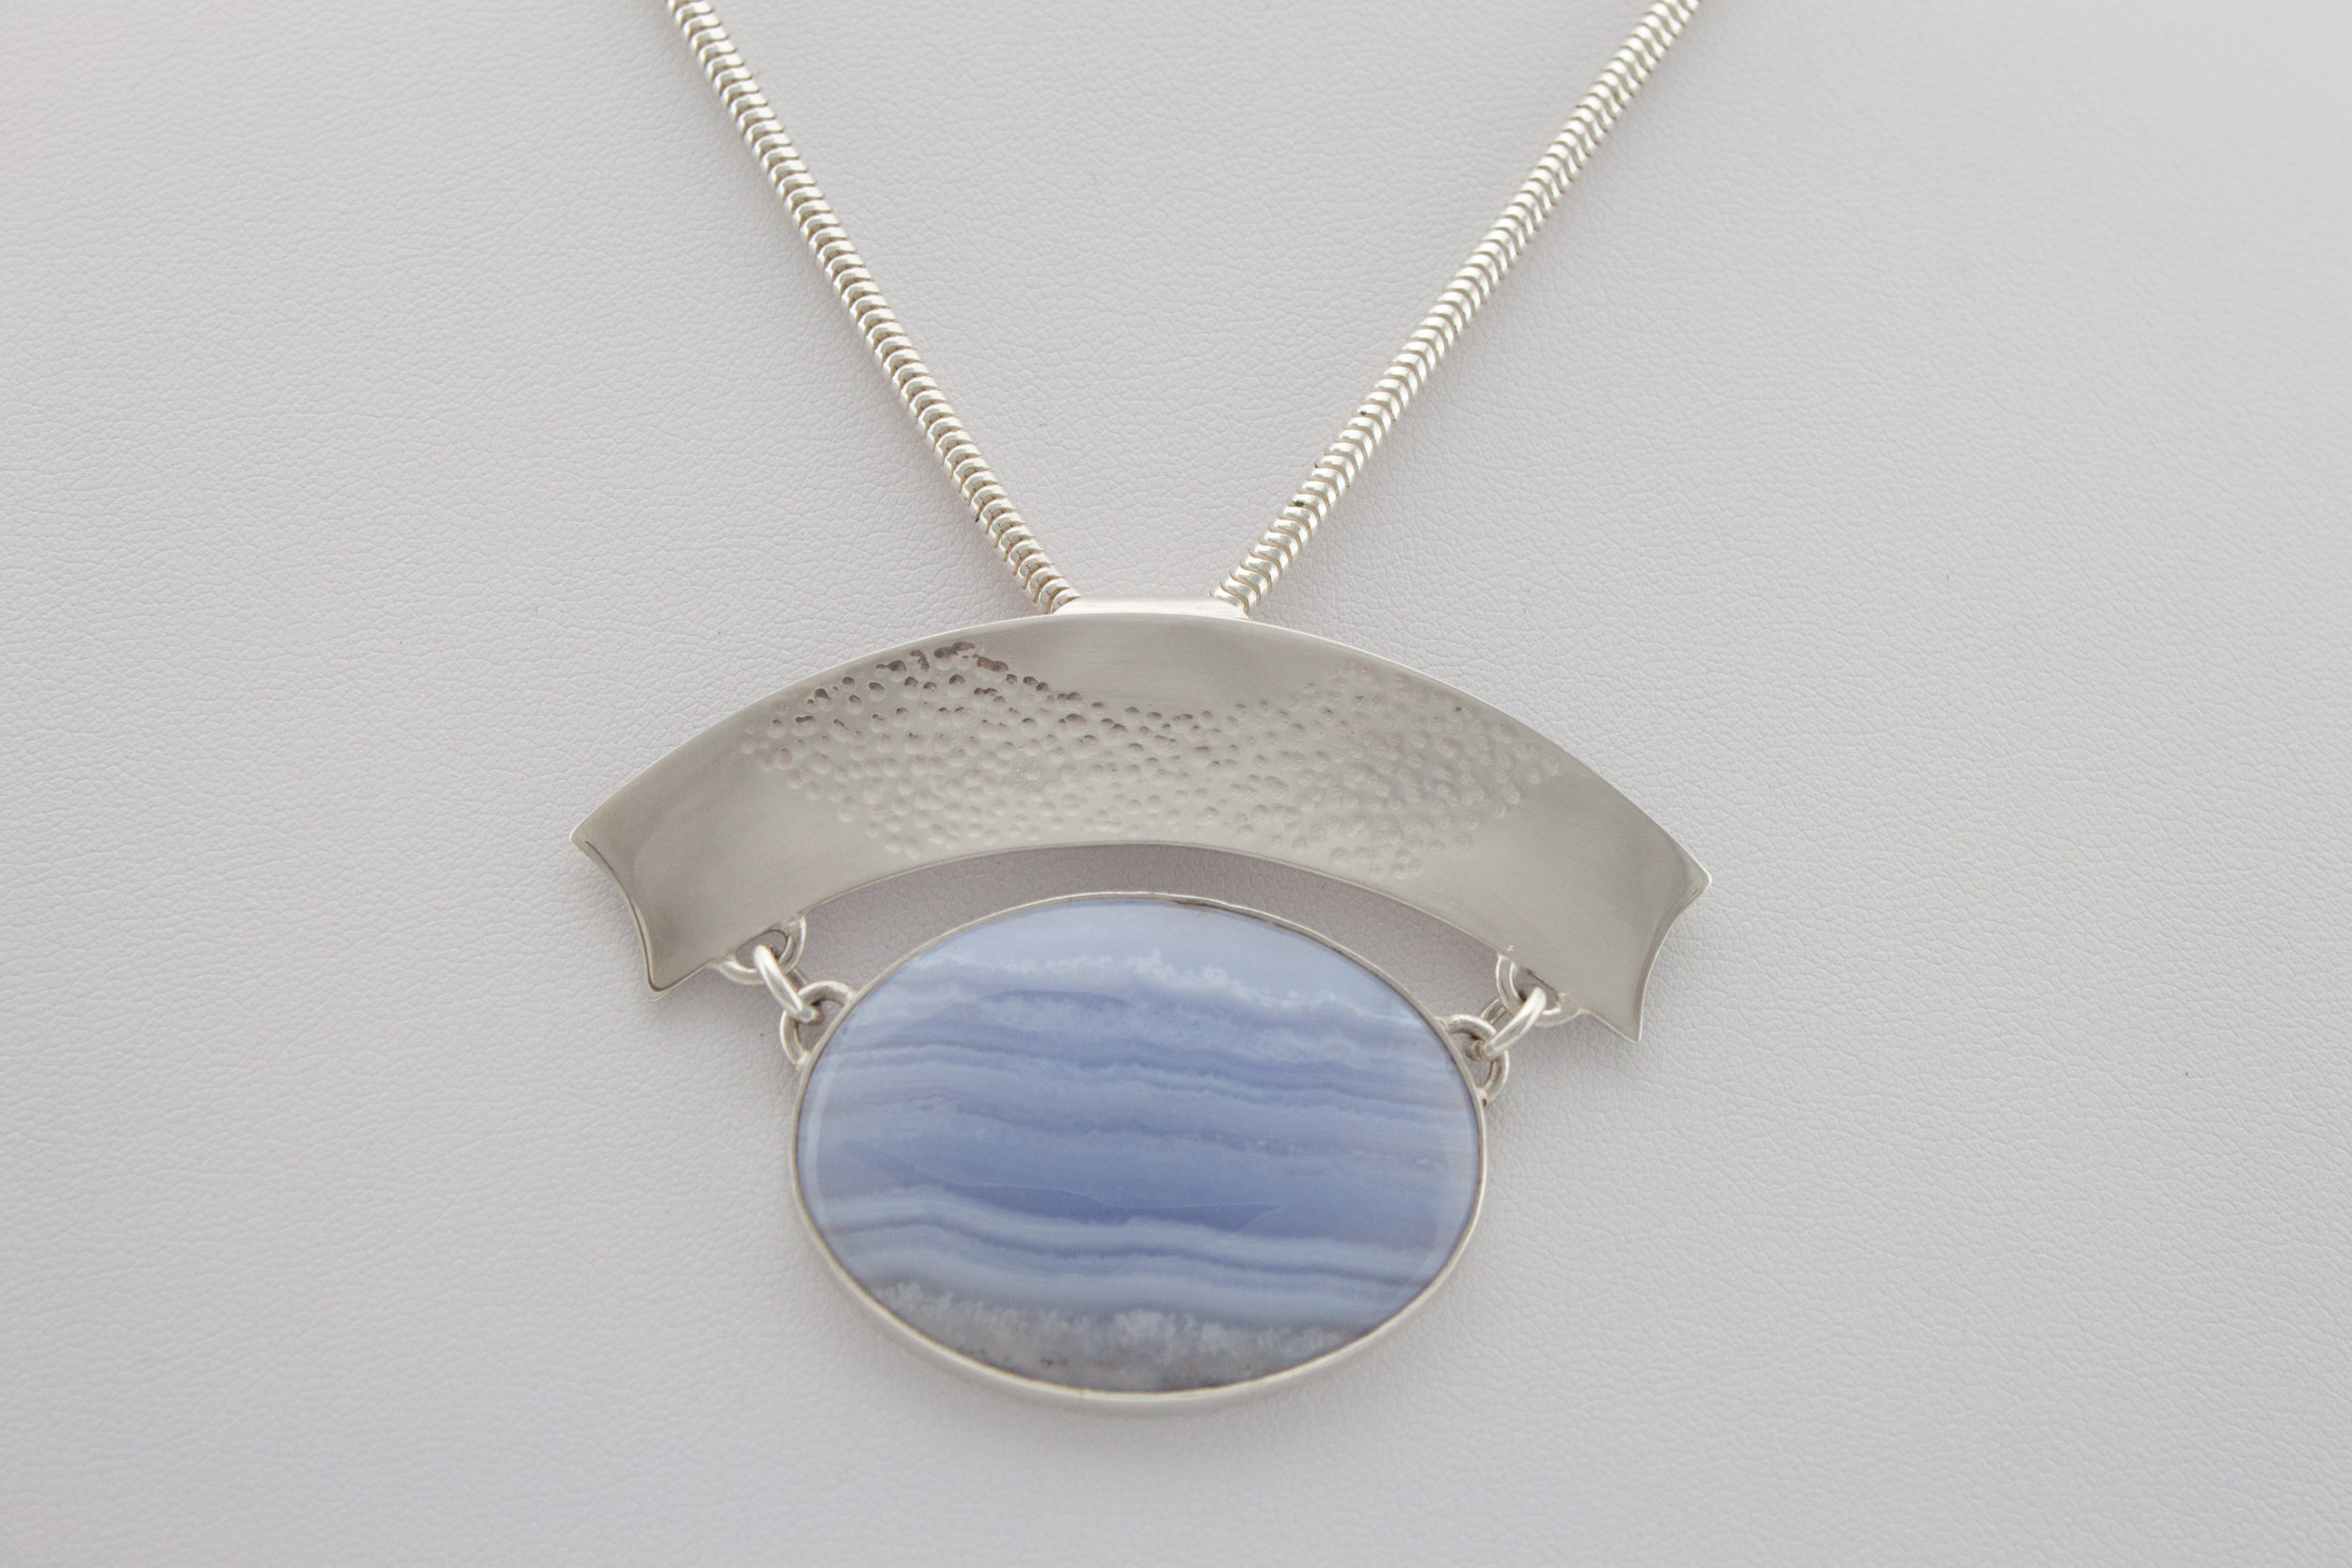 Valma Rhodes _Cloud Form_2018_Sterling Silver and Blue Lace Agate_7cmx5cm.jpg